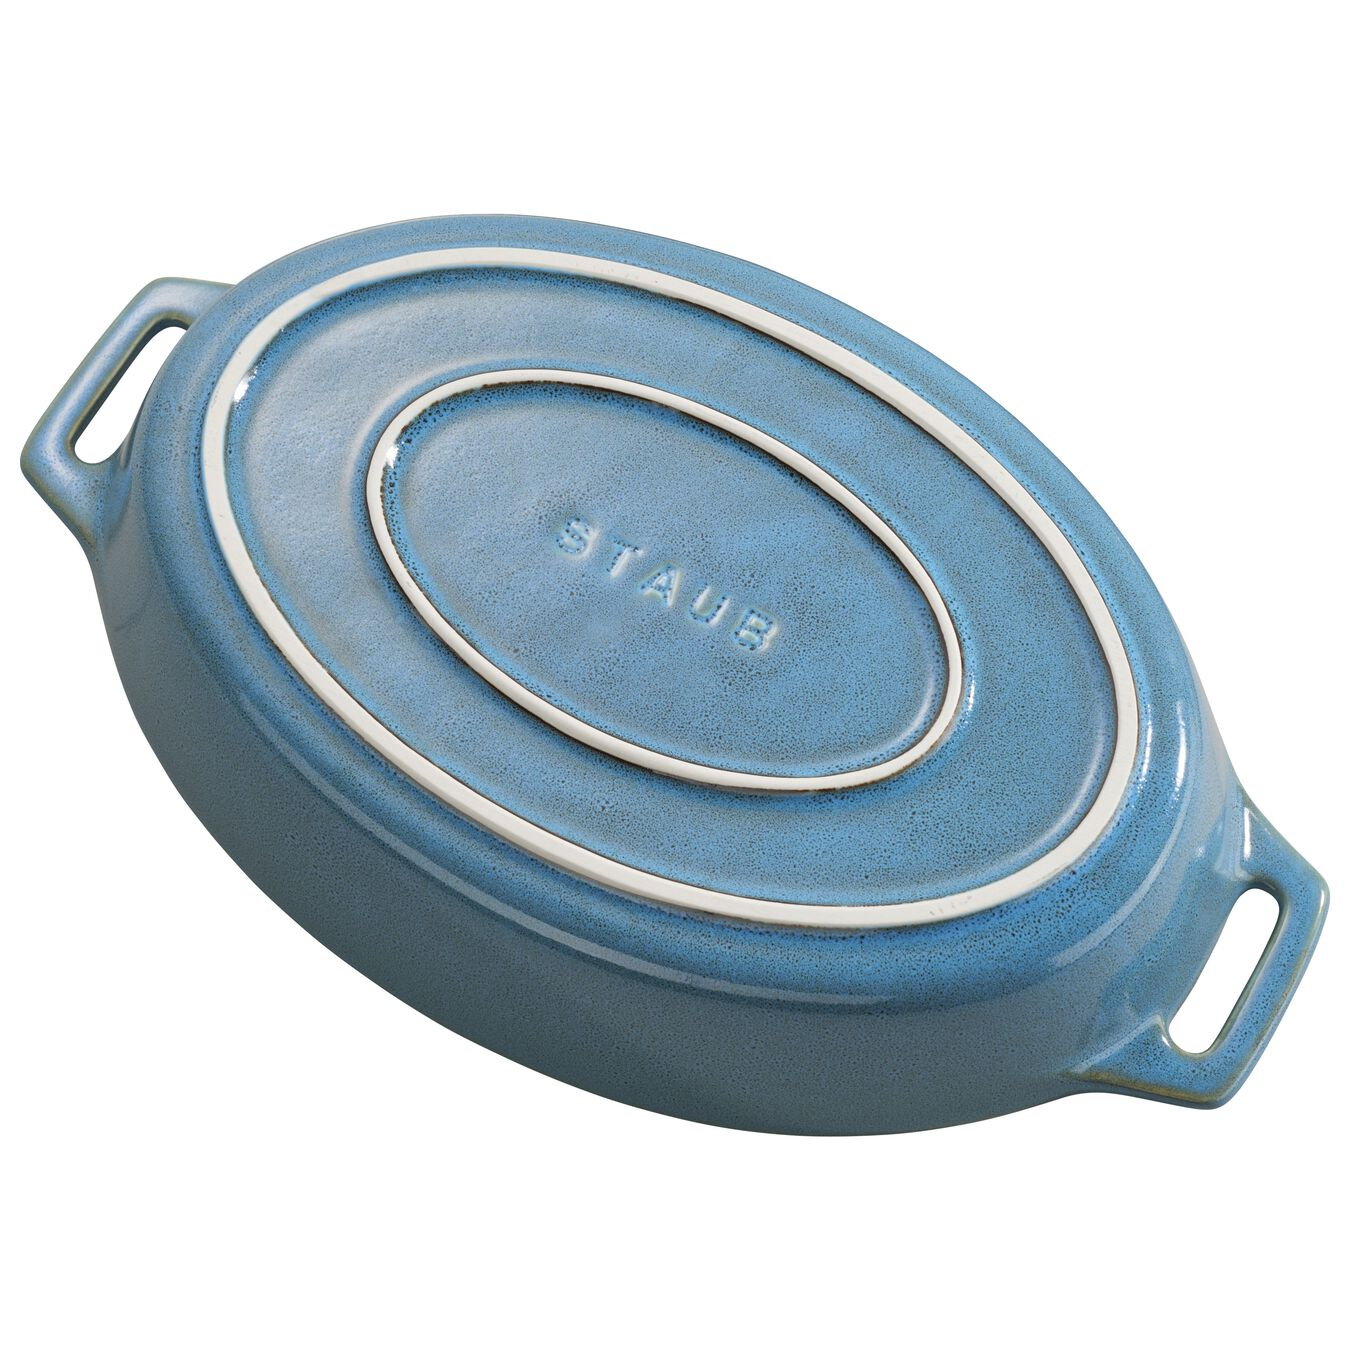 11-inch Oval Baking Dish - Rustic Turquoise,,large 3